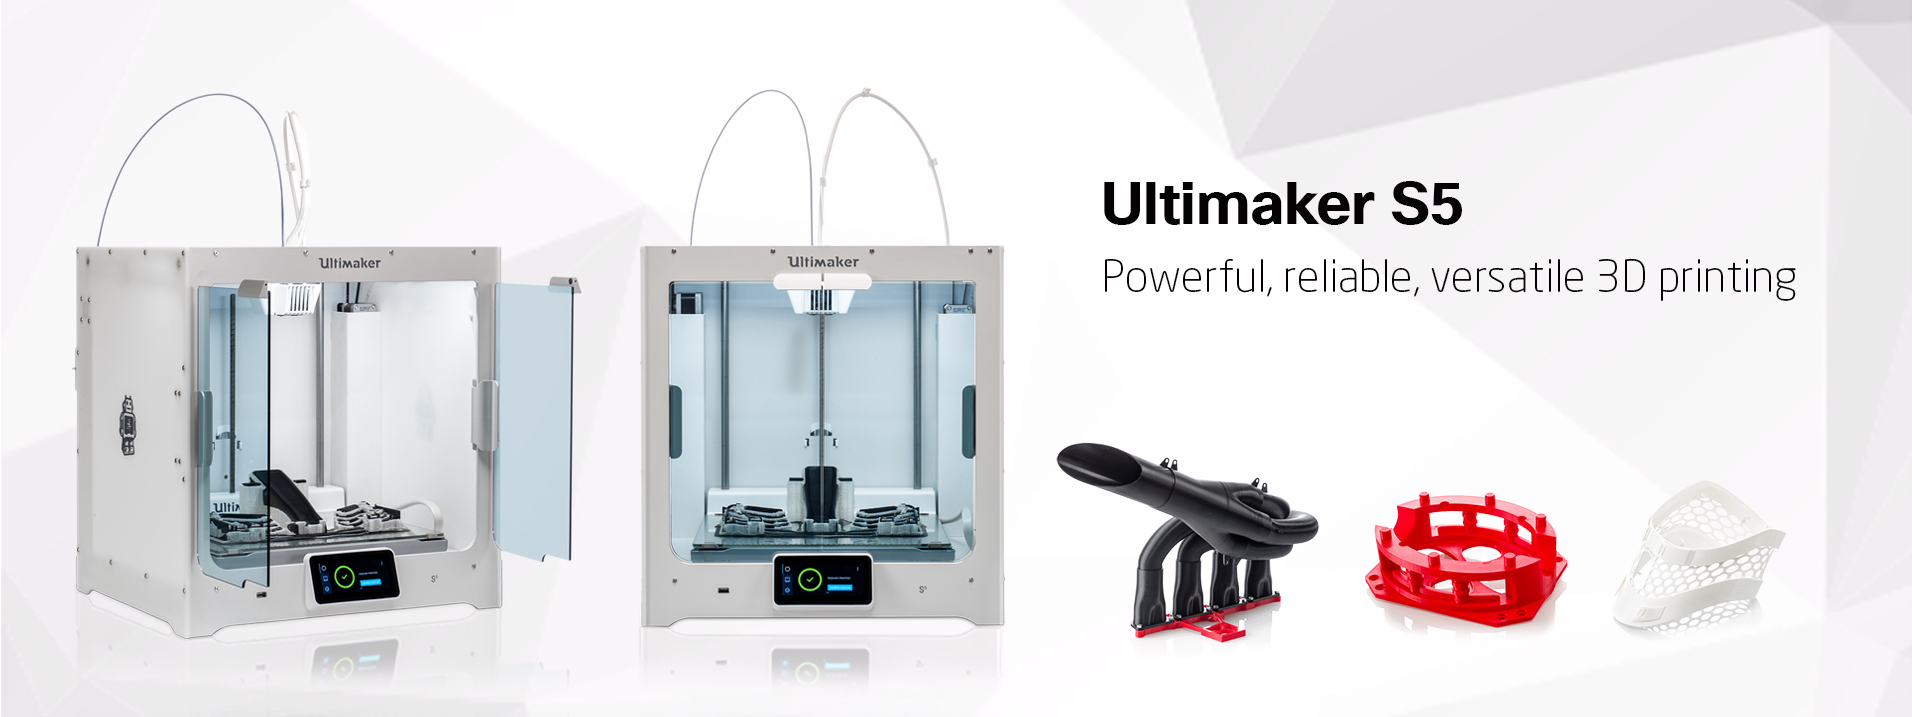 180609_01_ultimaker-s5_web-banner.jpg